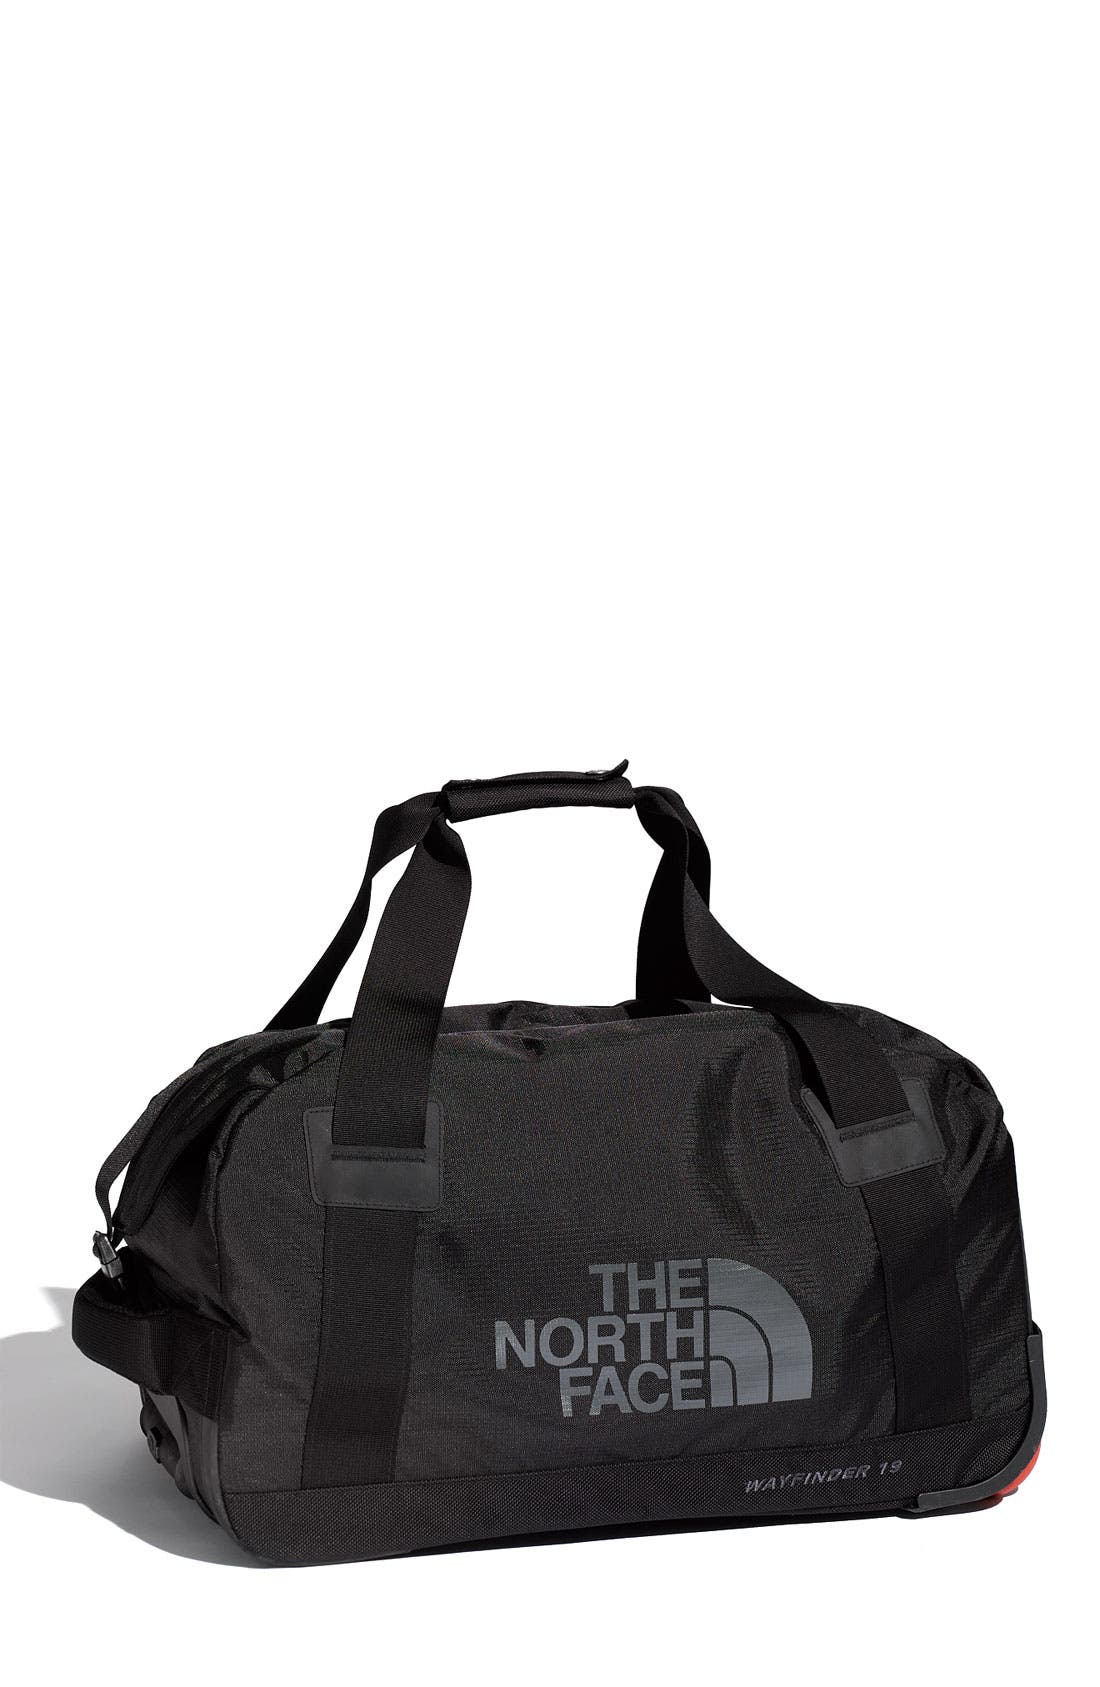 Main Image - The North Face 'Wayfinder' Carry-On Wheeled Duffel Bag